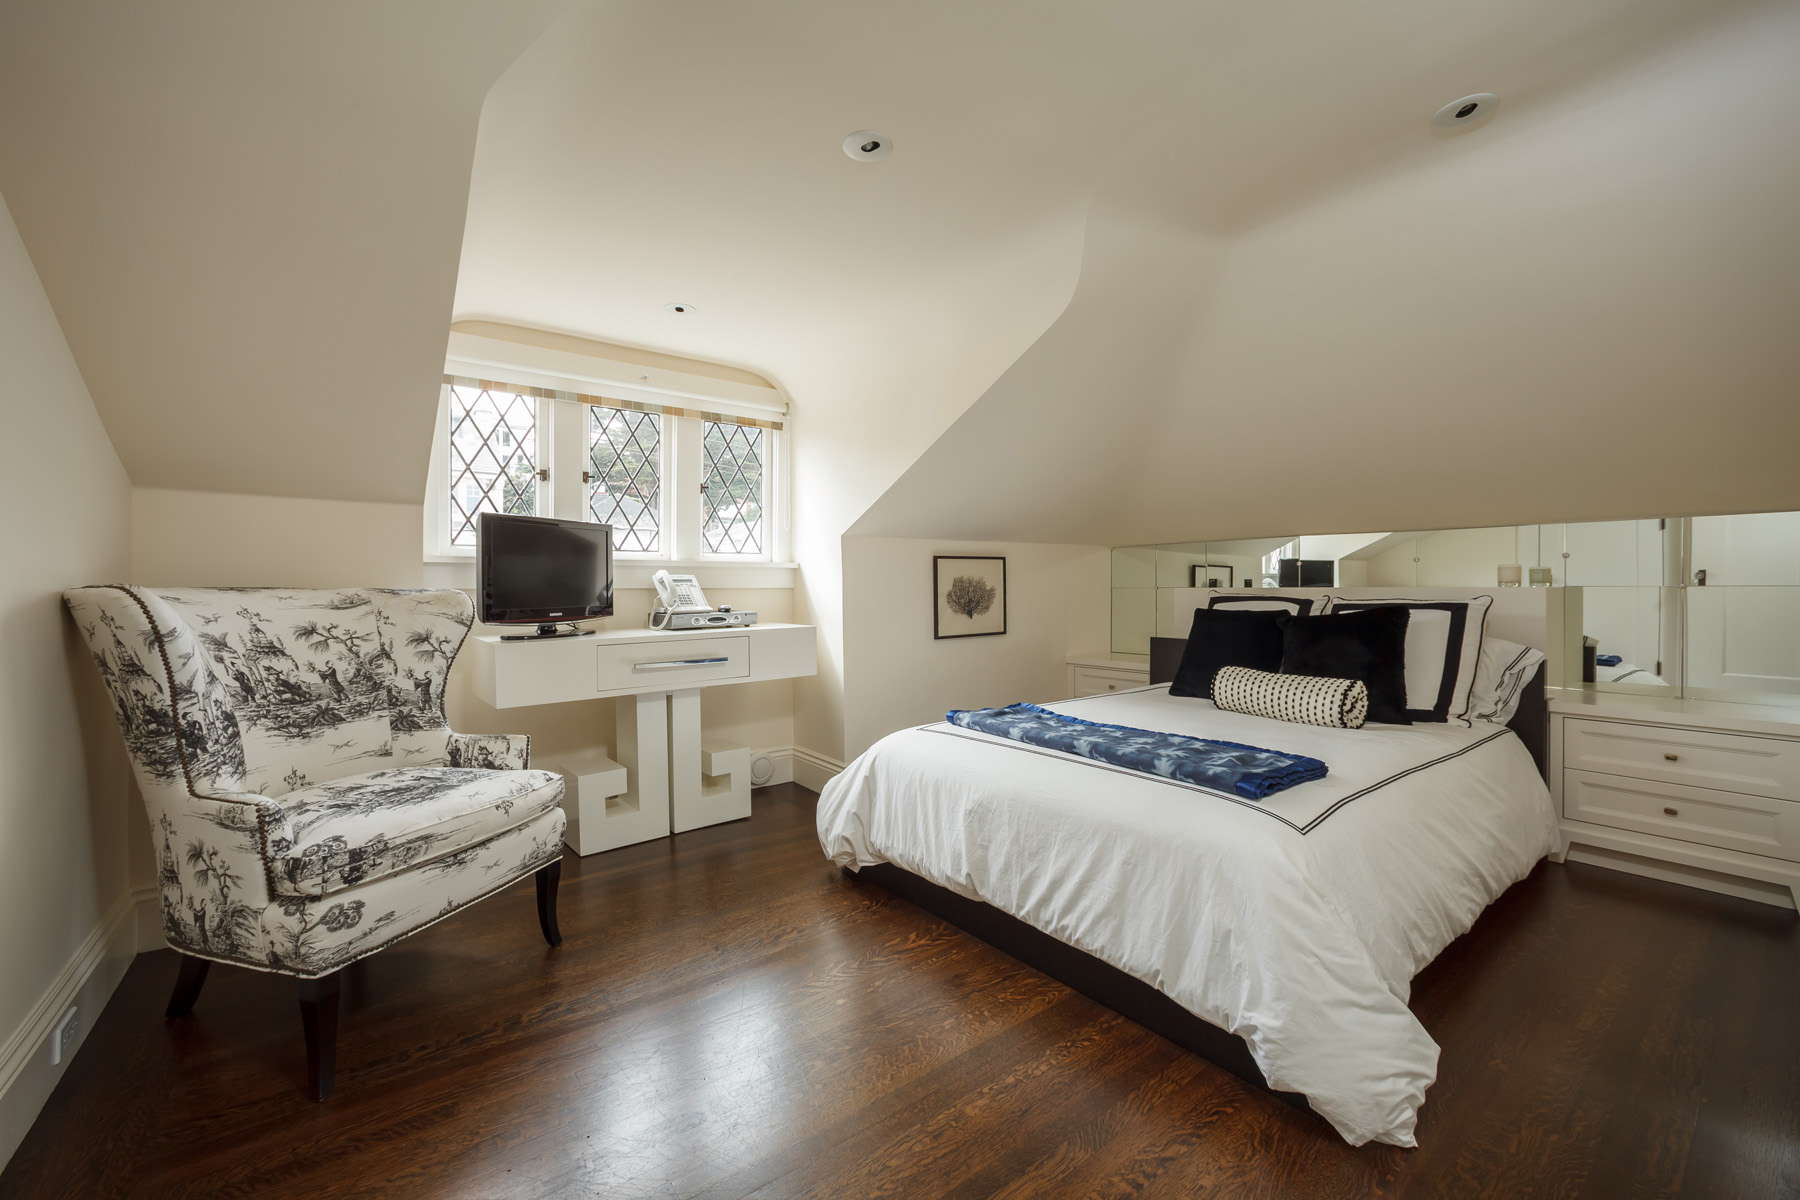 Upstairs_Bed_South_7832.jpg